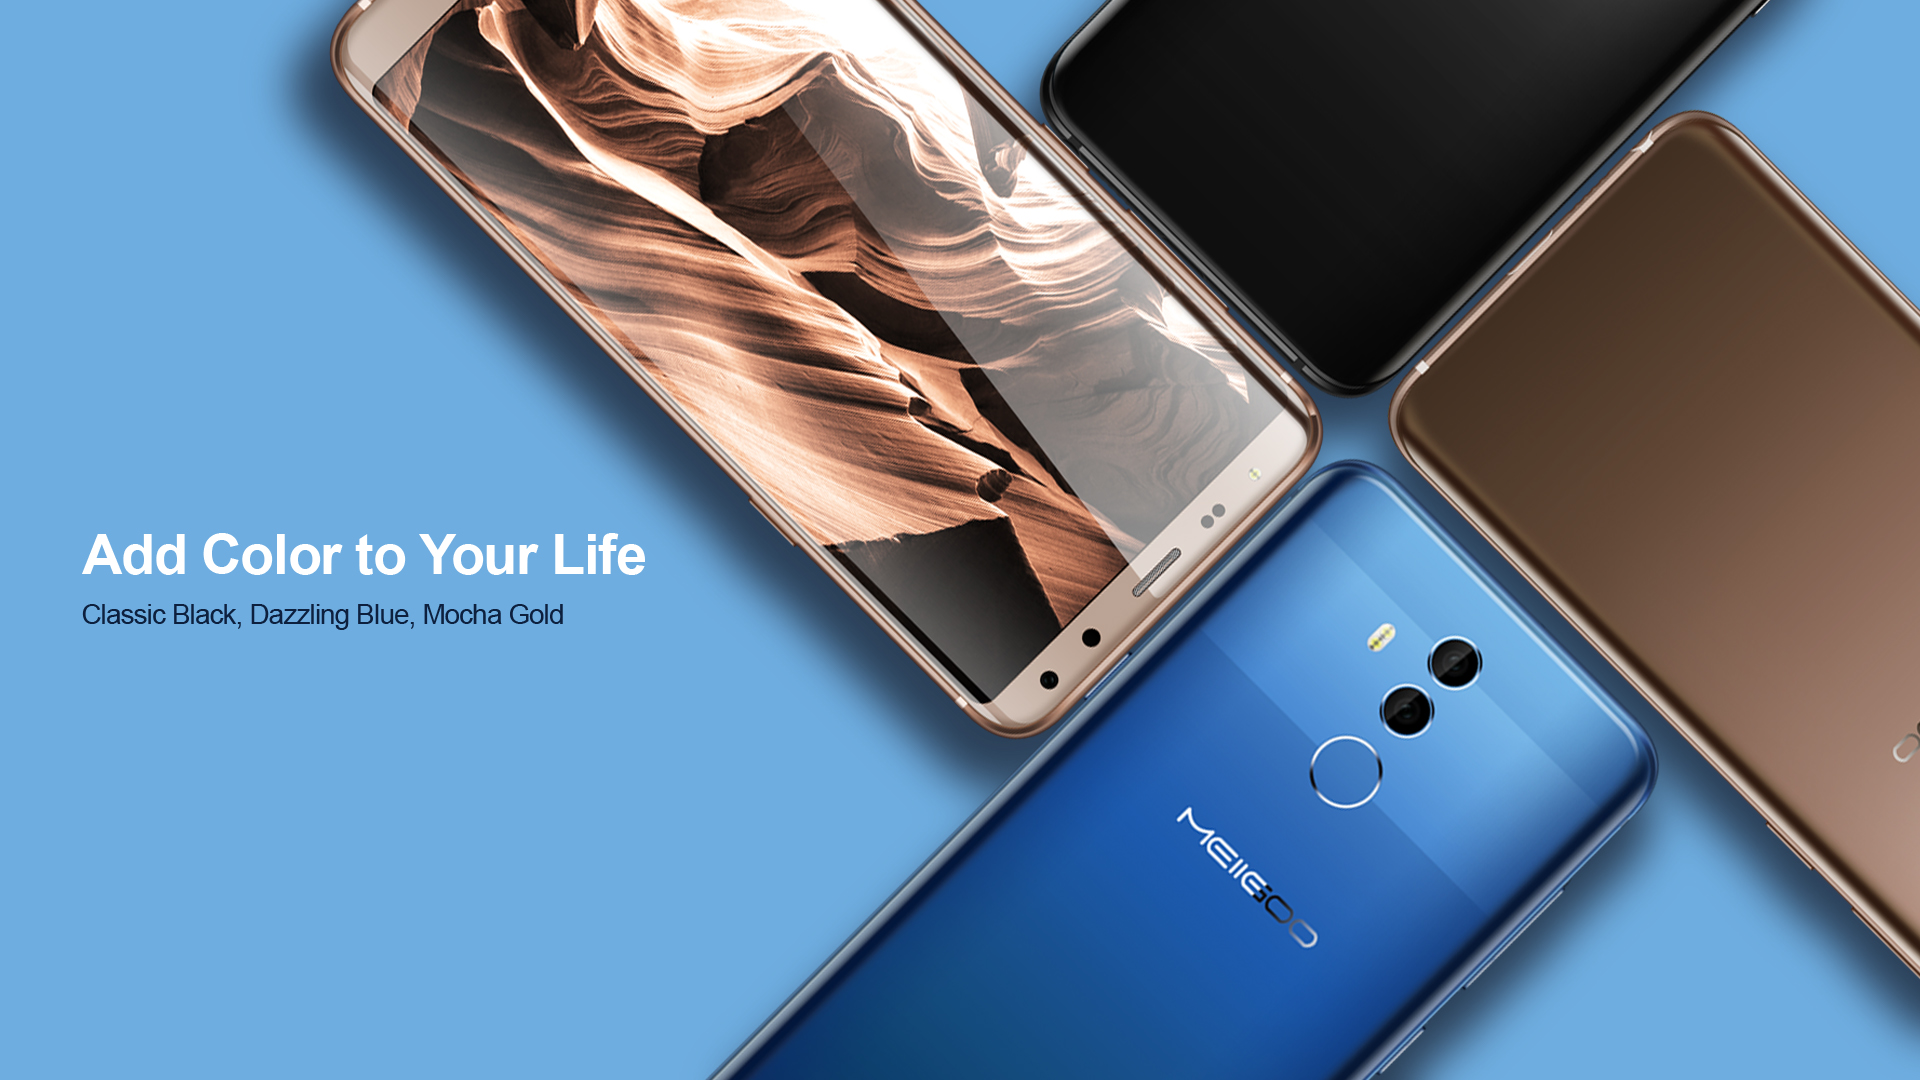 20180122142822 831 - Meiigoo Mate 10 Price, Specs, Features and Review.